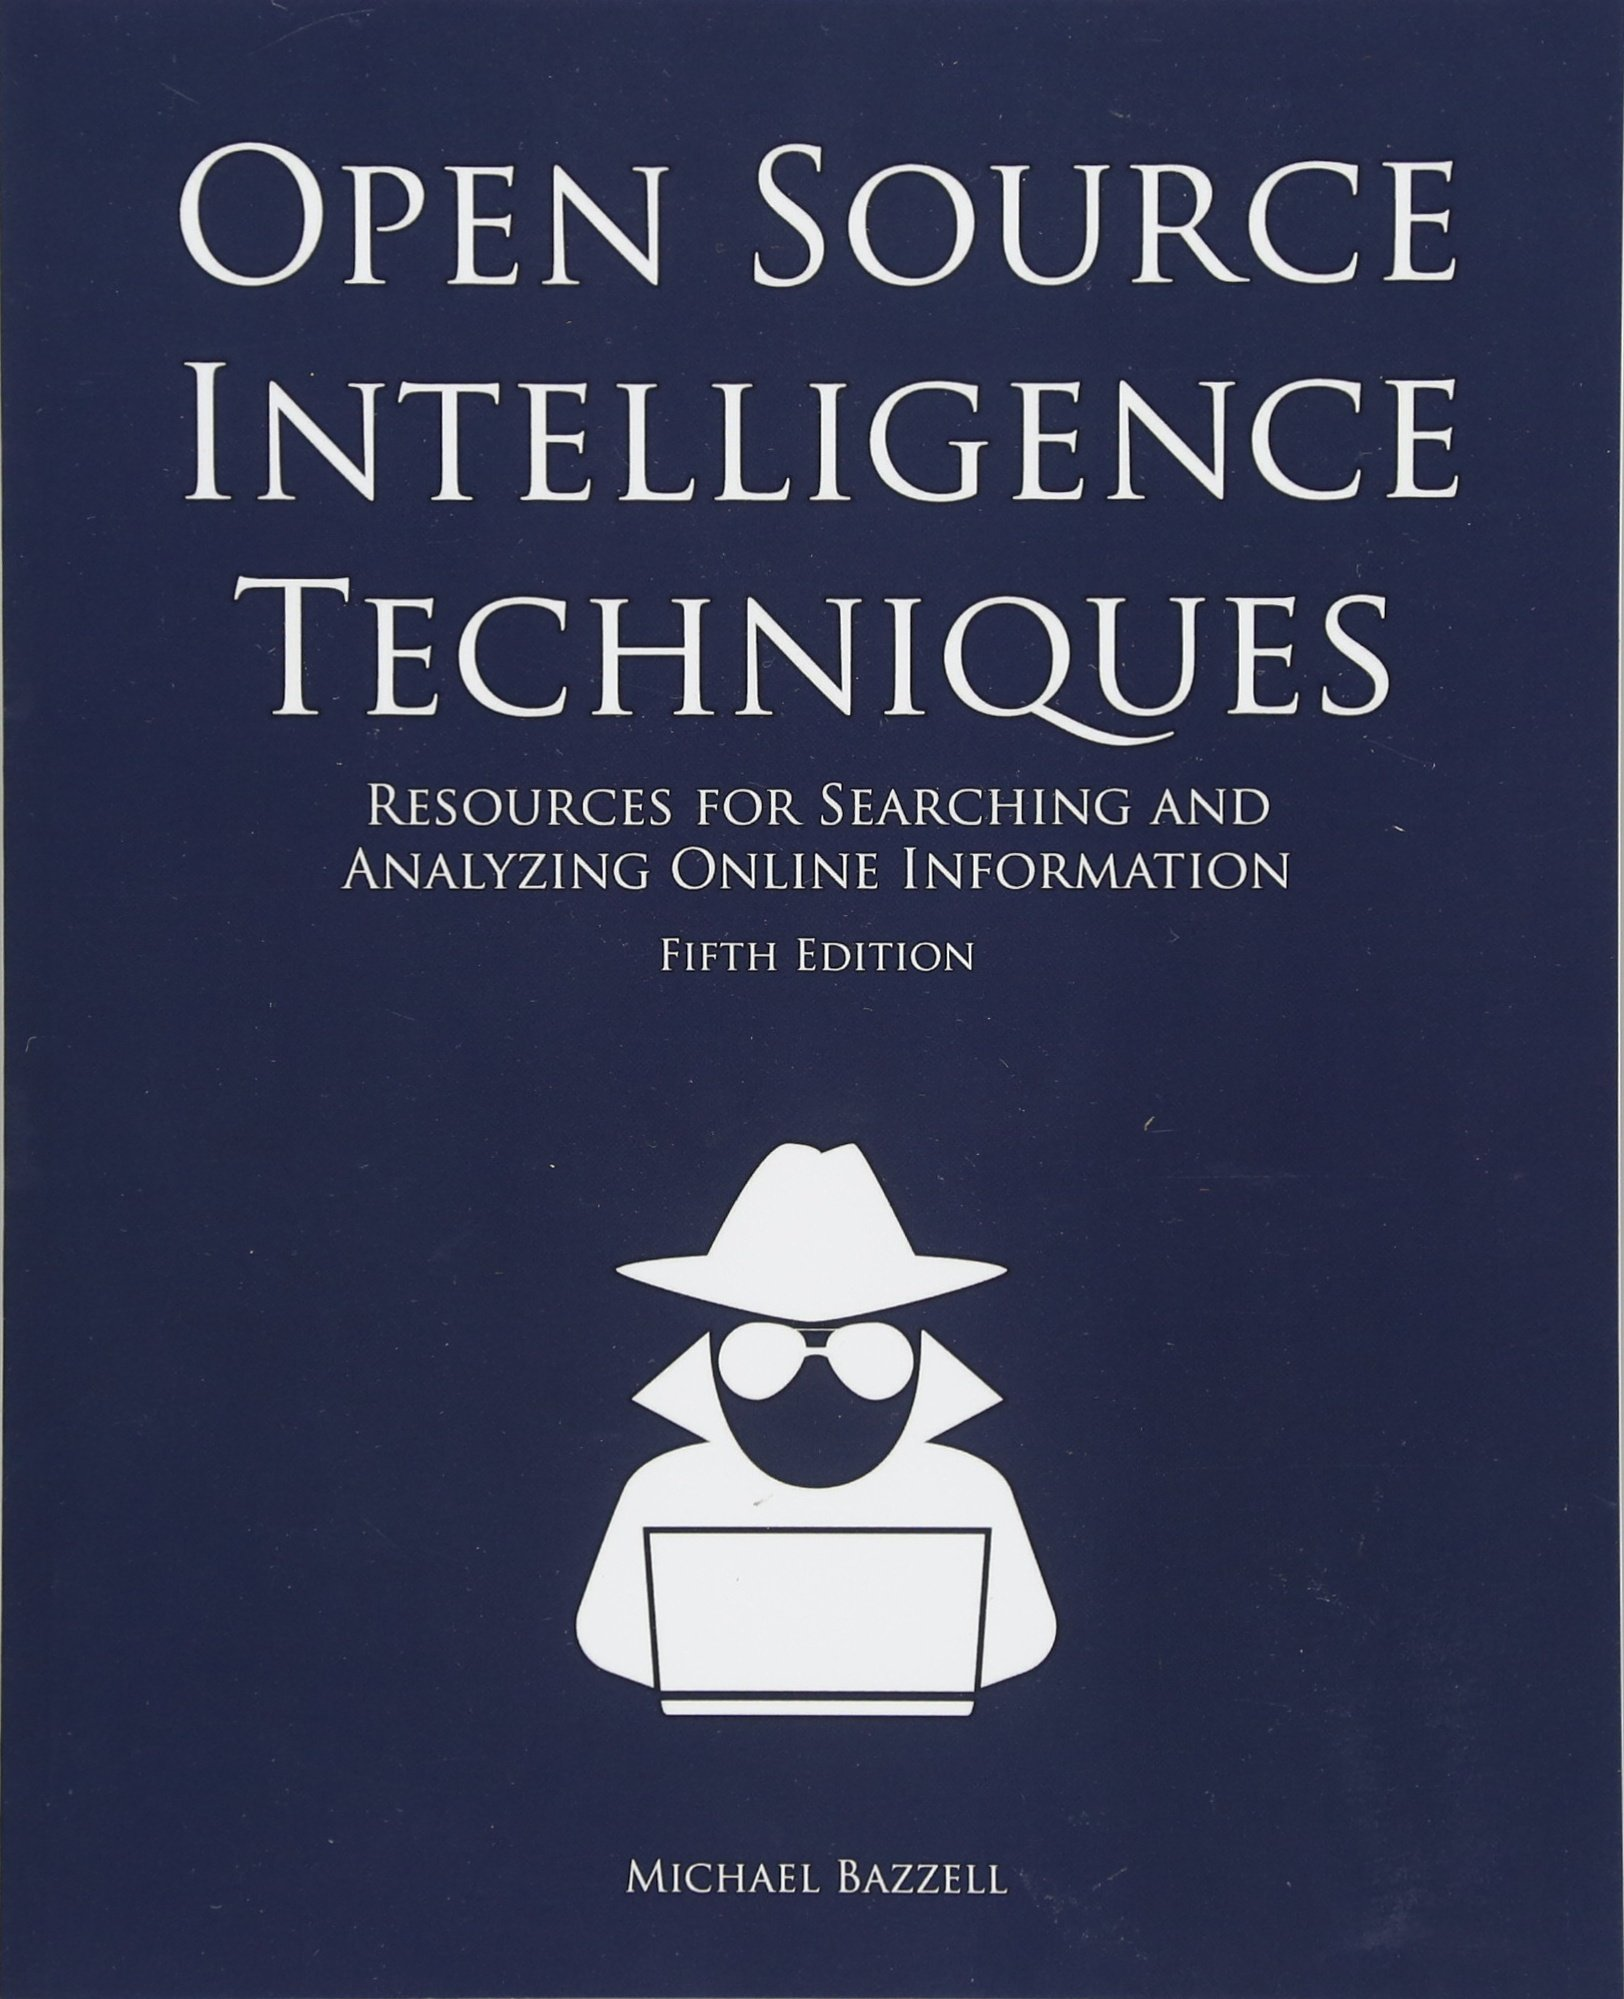 Open Source Intelligence Techniques: Resources for Searching and Analyzing  Online Information: Amazon.co.uk: Michael Bazzell: 9781530508907: Books